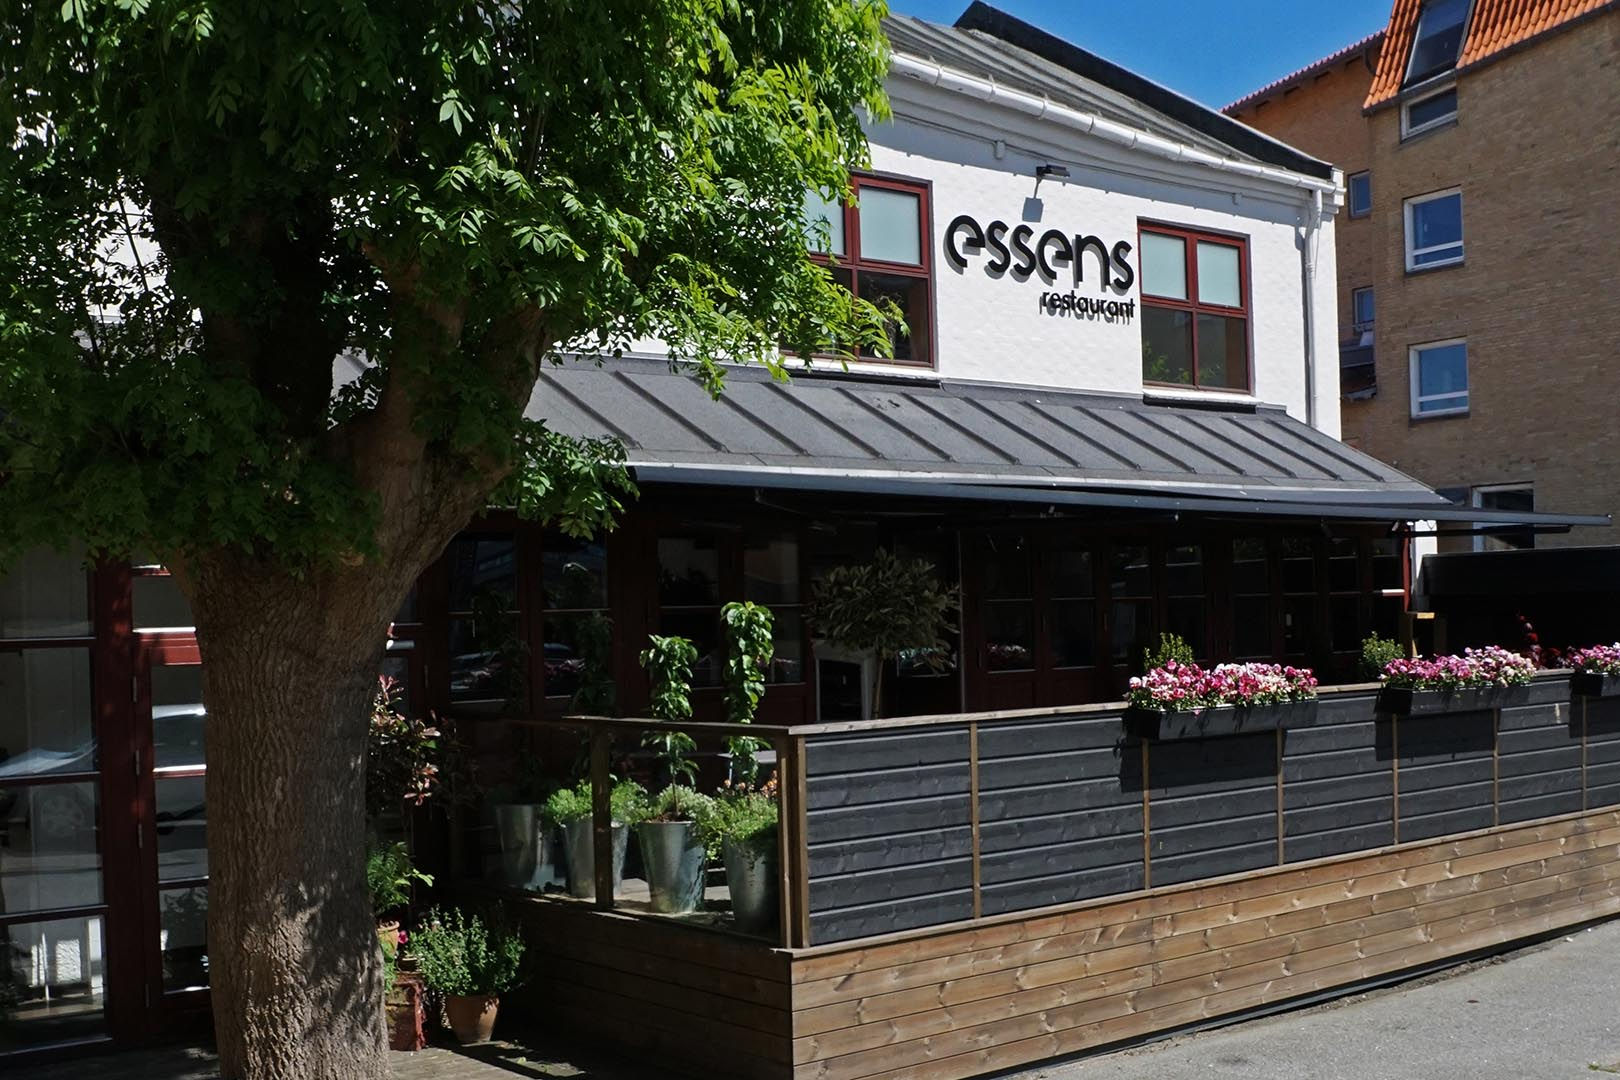 Restaurant Essens, Feel-good food in cosy surroundings, Scan Magazine